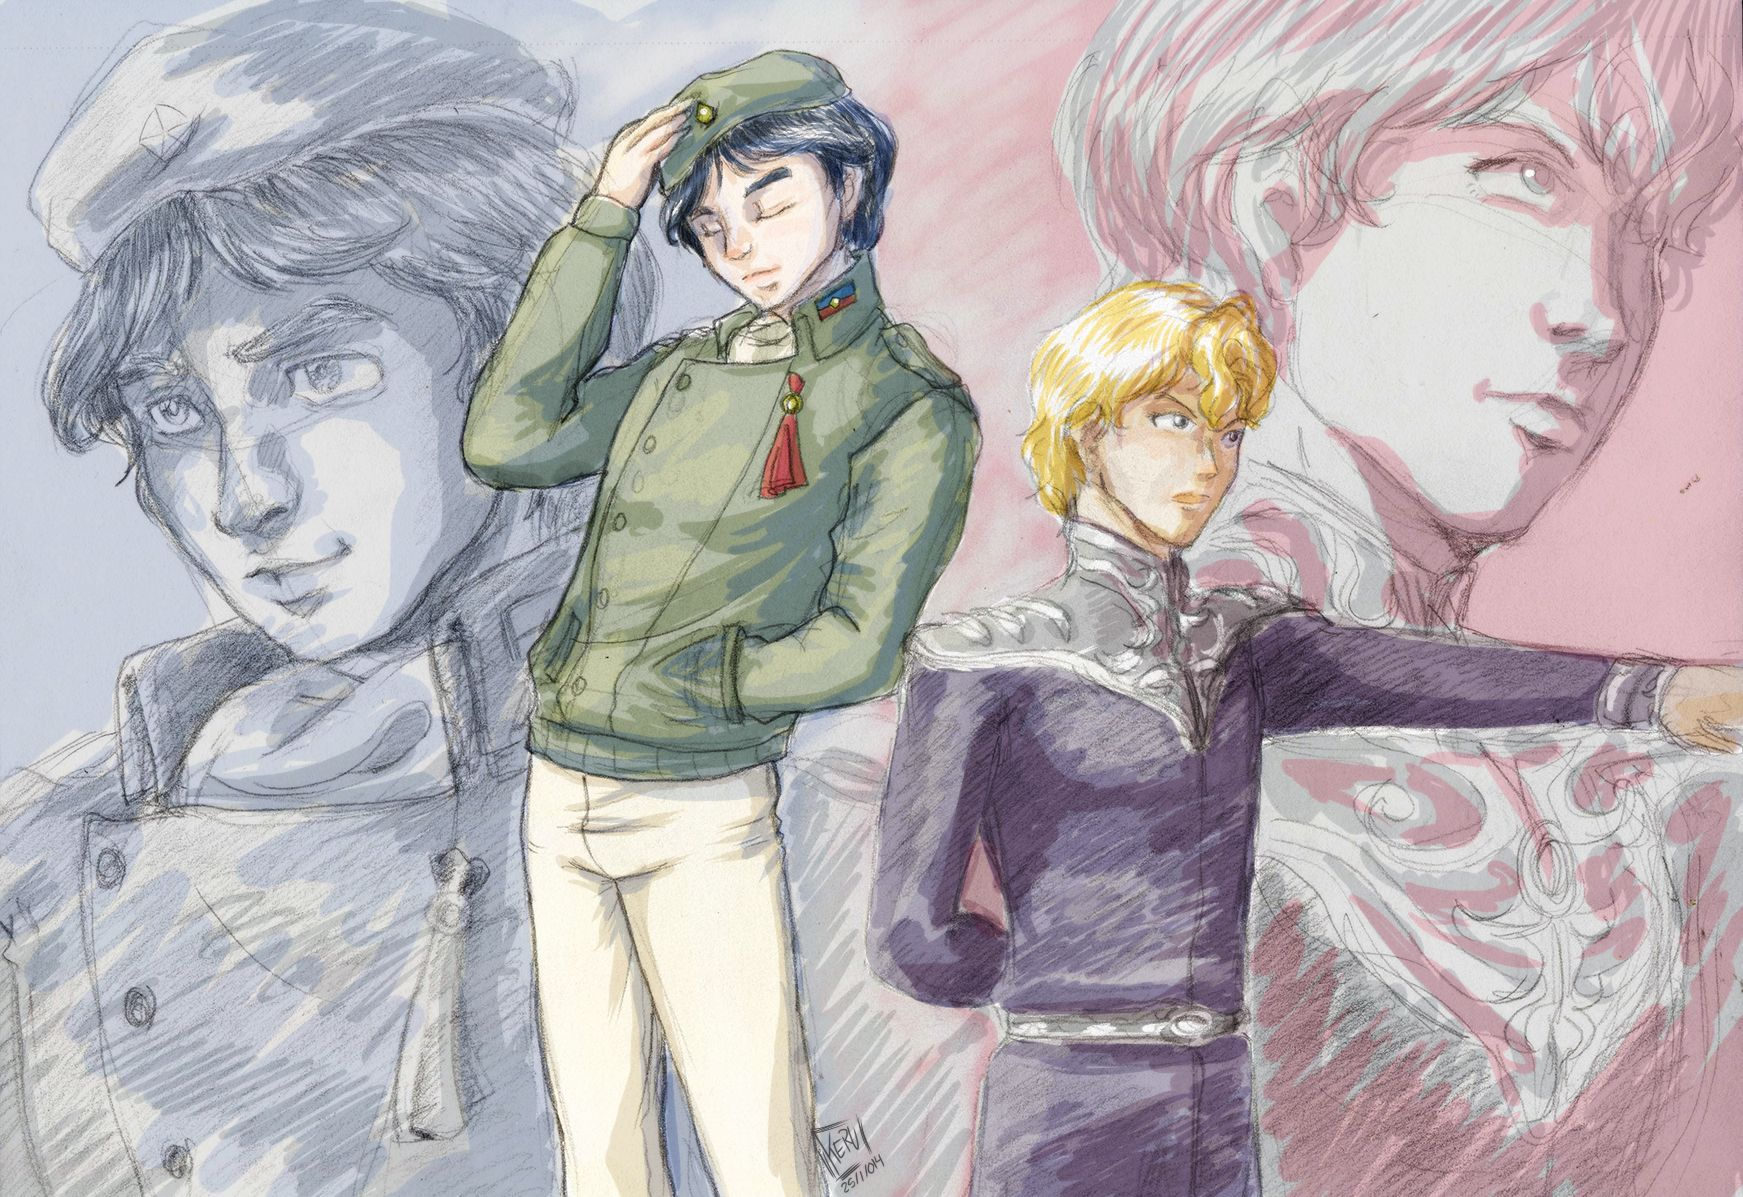 Legend of the Galactic Heroes!! One of my fav anime series!!